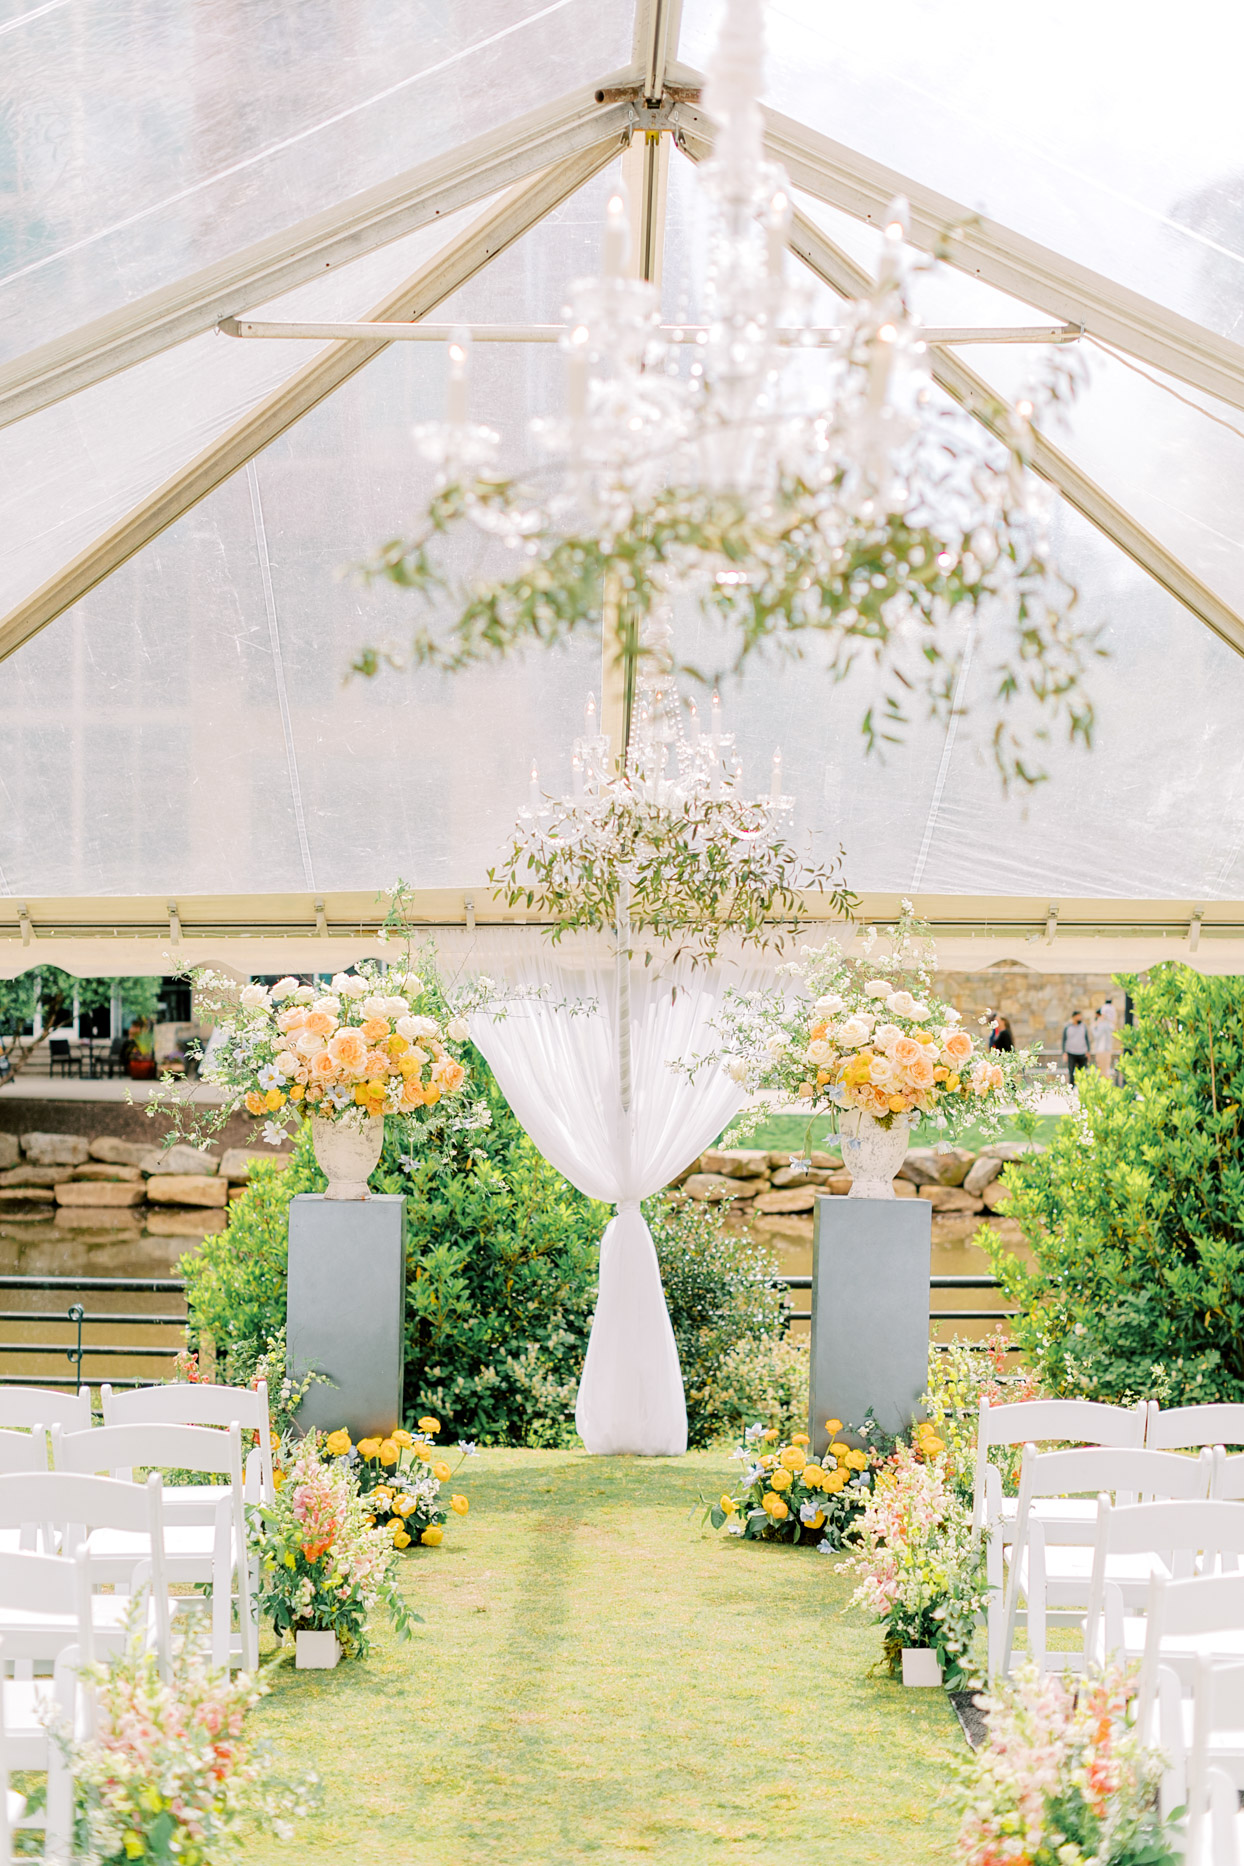 large white tent wedding ceremony space with various floral decor